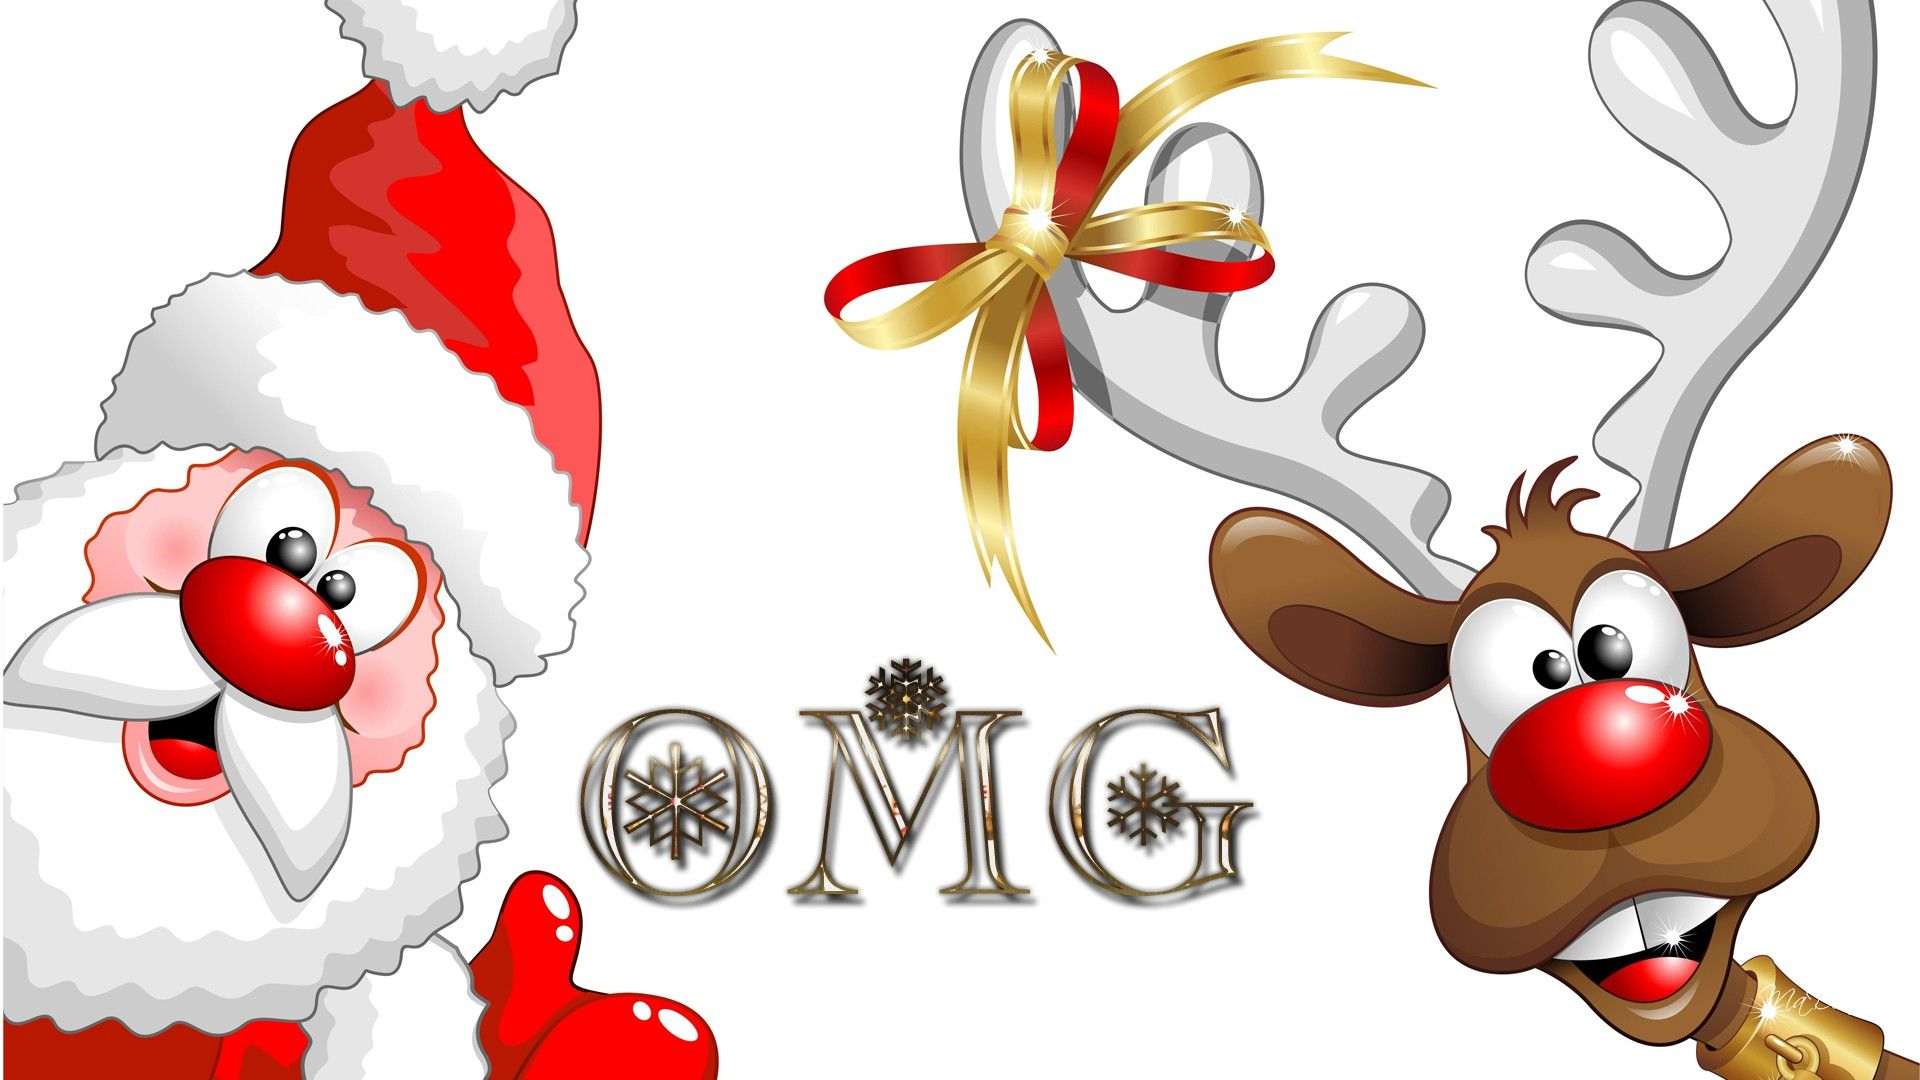 Surprised Santa Amd Rudolph wallpaper free Merry